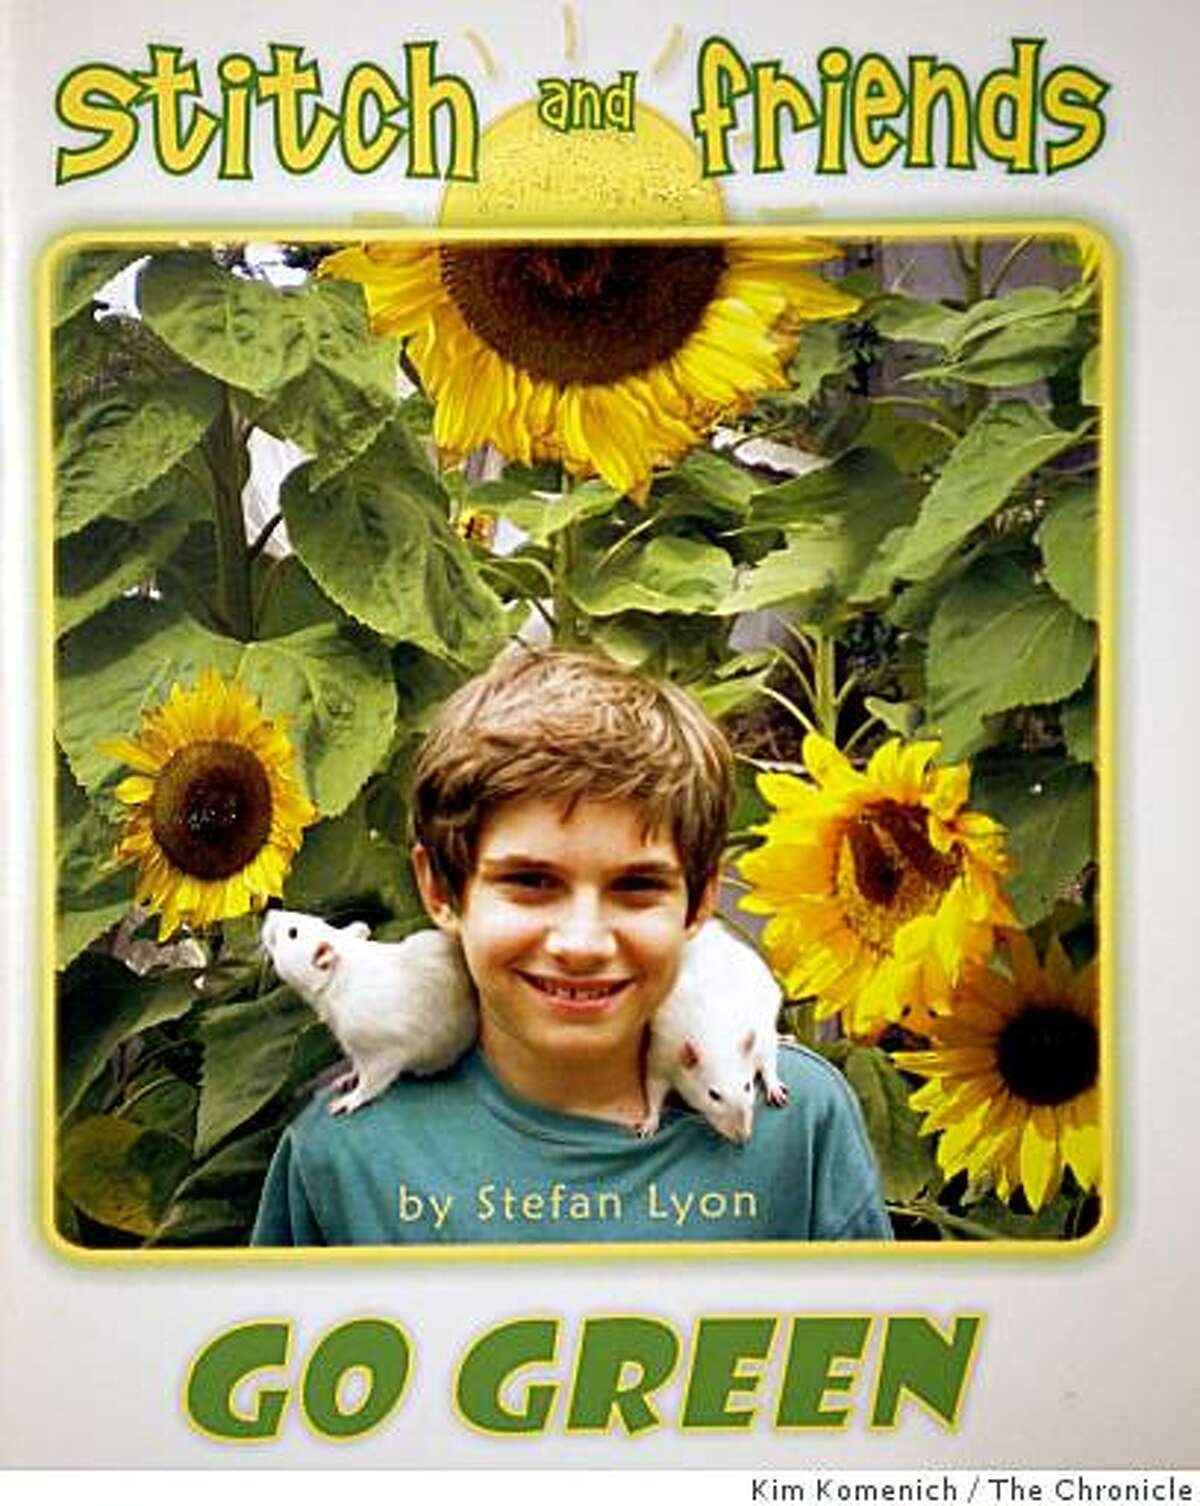 Stefan Lyon, 13, of San Francsico, Calif. signs copies of his third book